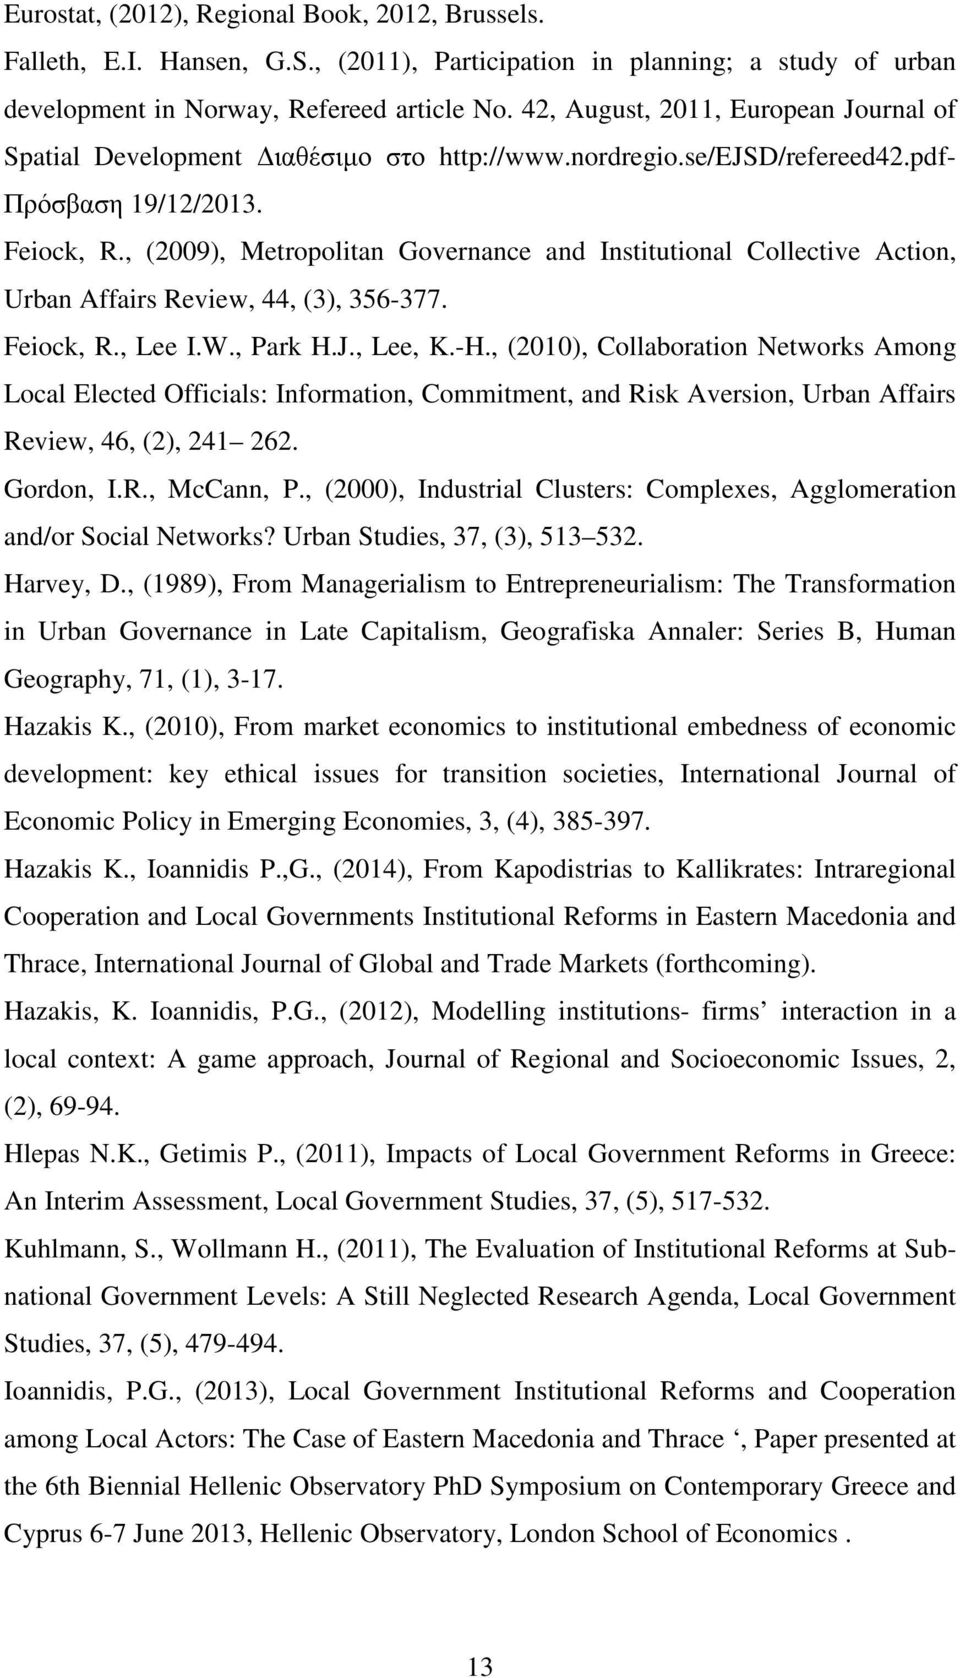 , (2009), Metropolitan Governance and Institutional Collective Action, Urban Affairs Review, 44, (3), 356-377. Feiock, R., Lee I.W., Park H.J., Lee, K.-H.